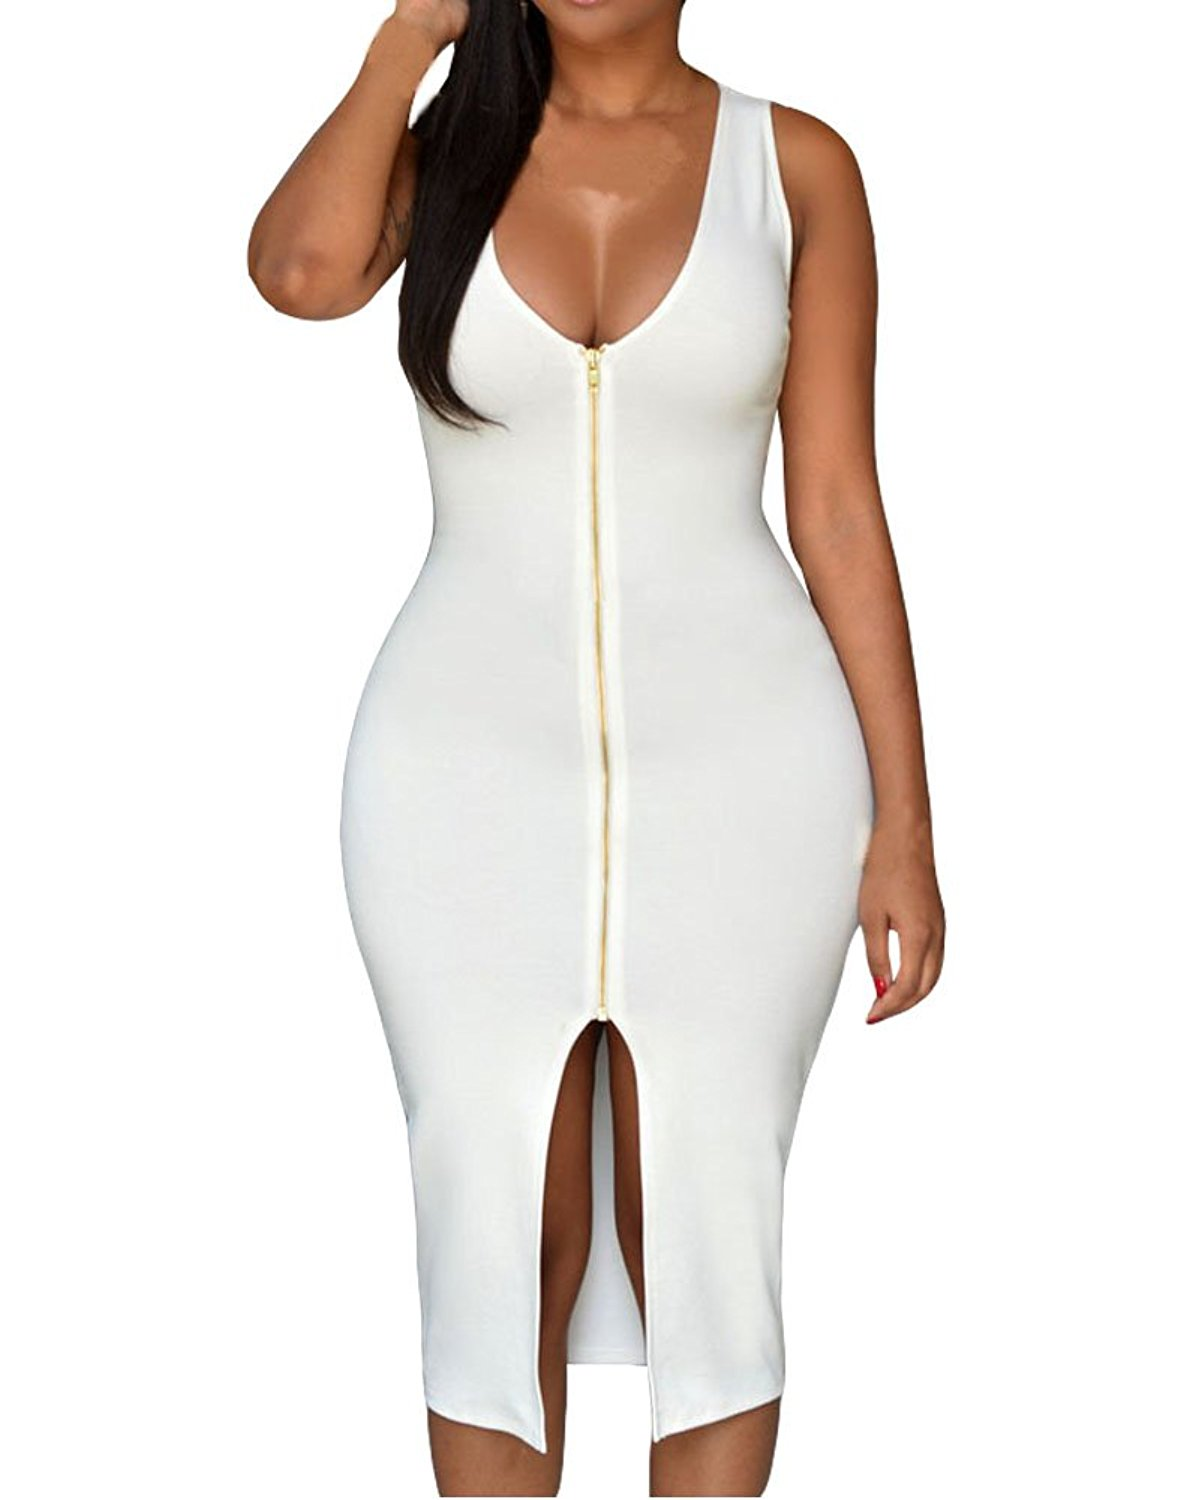 55e014dcf1 Get Quotations · Womens Sexy Bodycon Gold Zipper Front Plunge Midi Dress